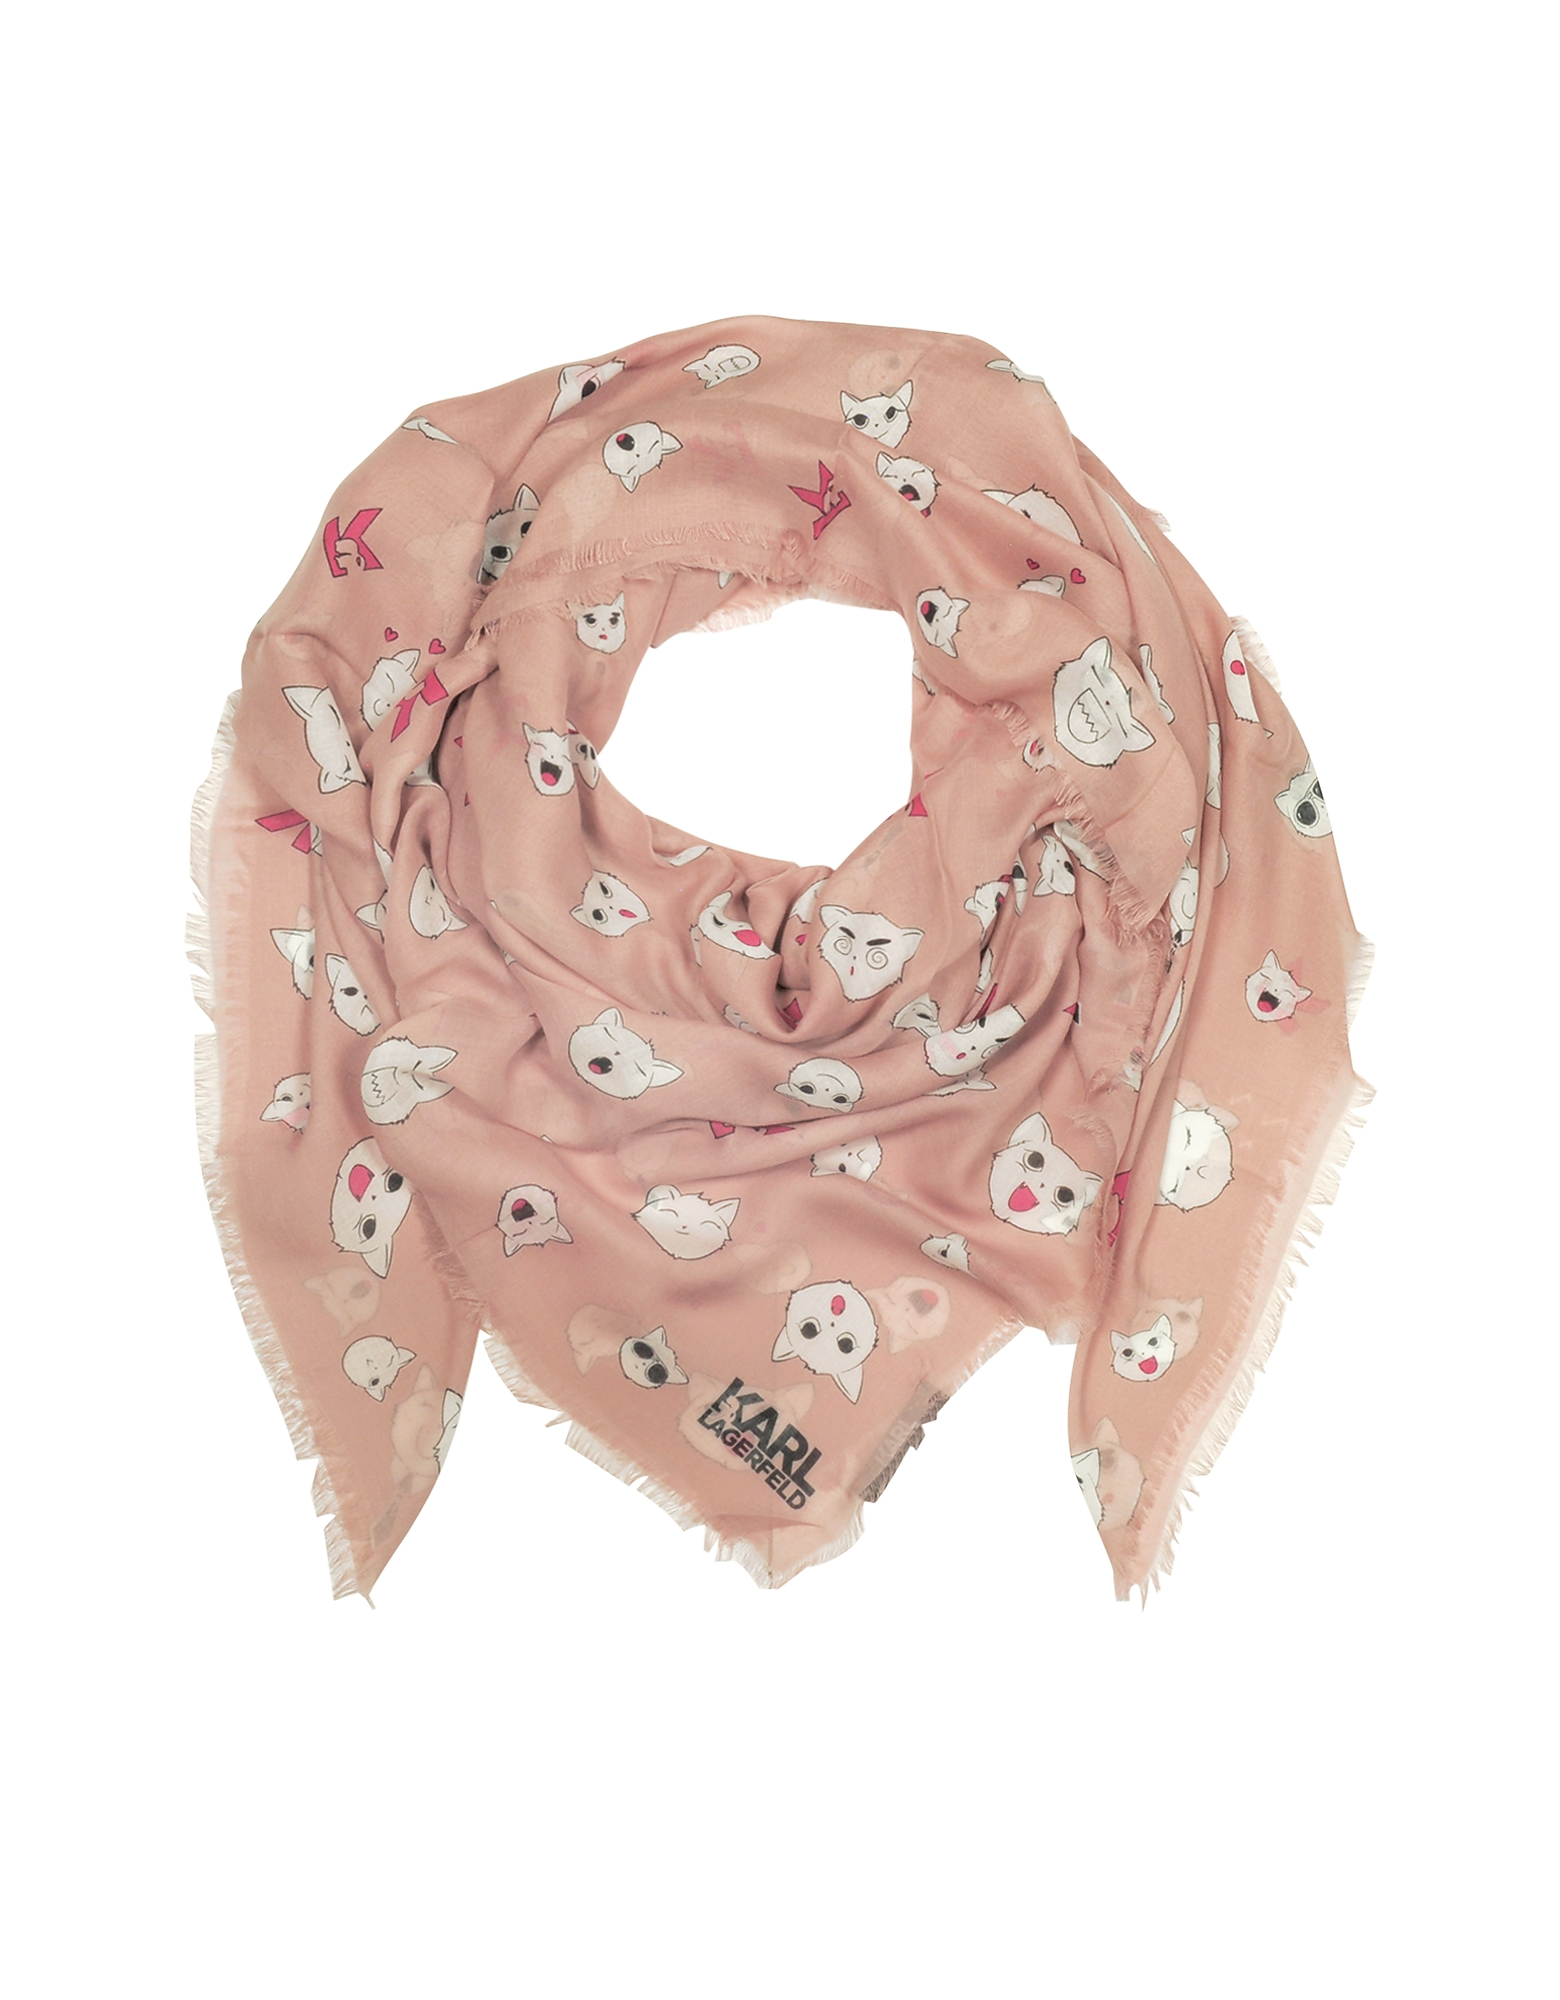 Karl Lagerfeld Shawls & Wraps, Quartz Pink Silk-mix Wrap w/Choupette Faces